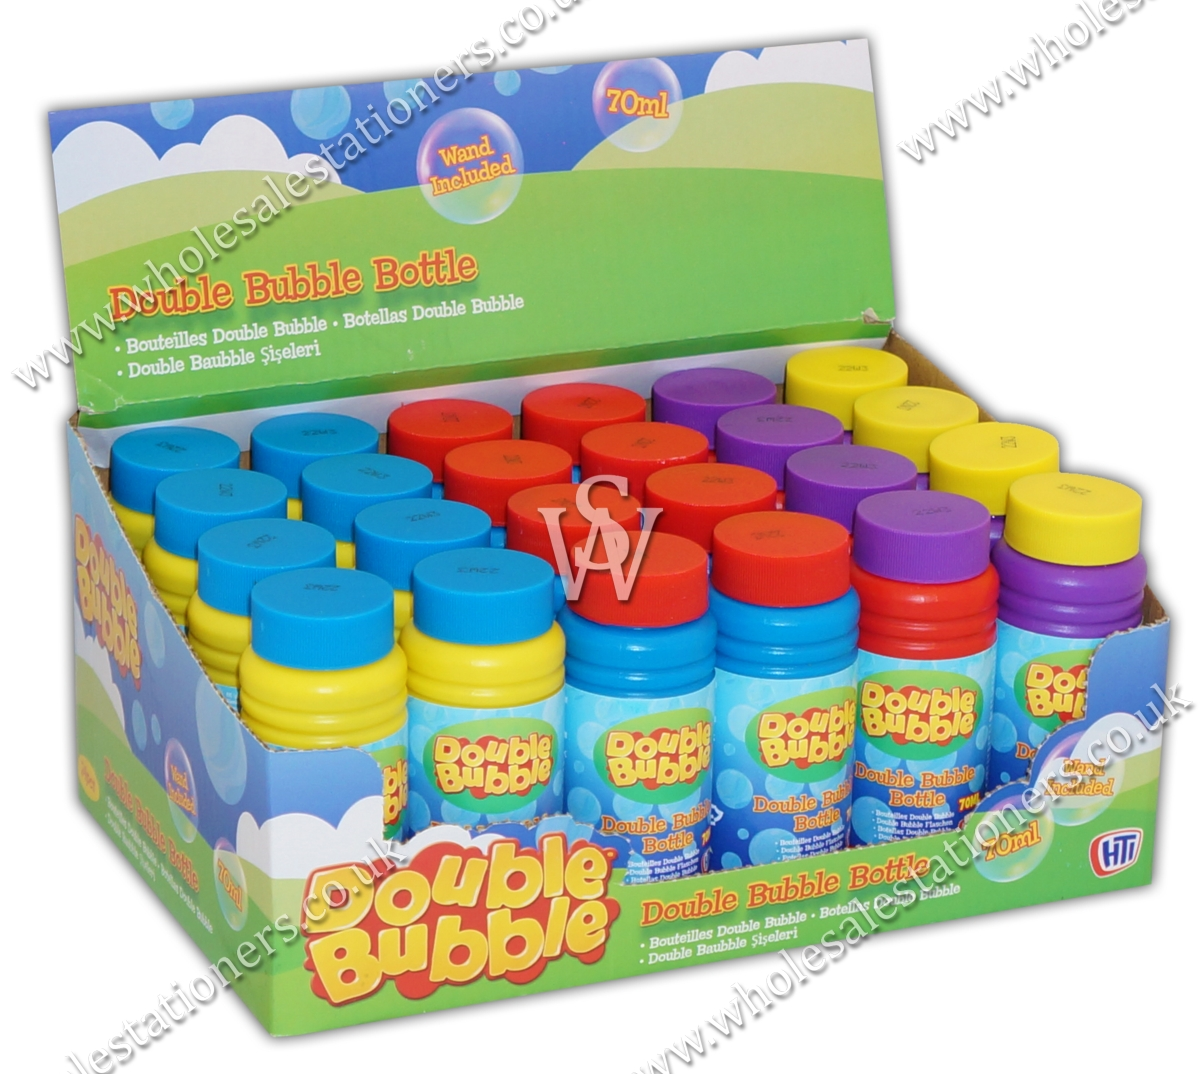 BUBBLE TUBS,70ml CDU - Wholesale Stationers